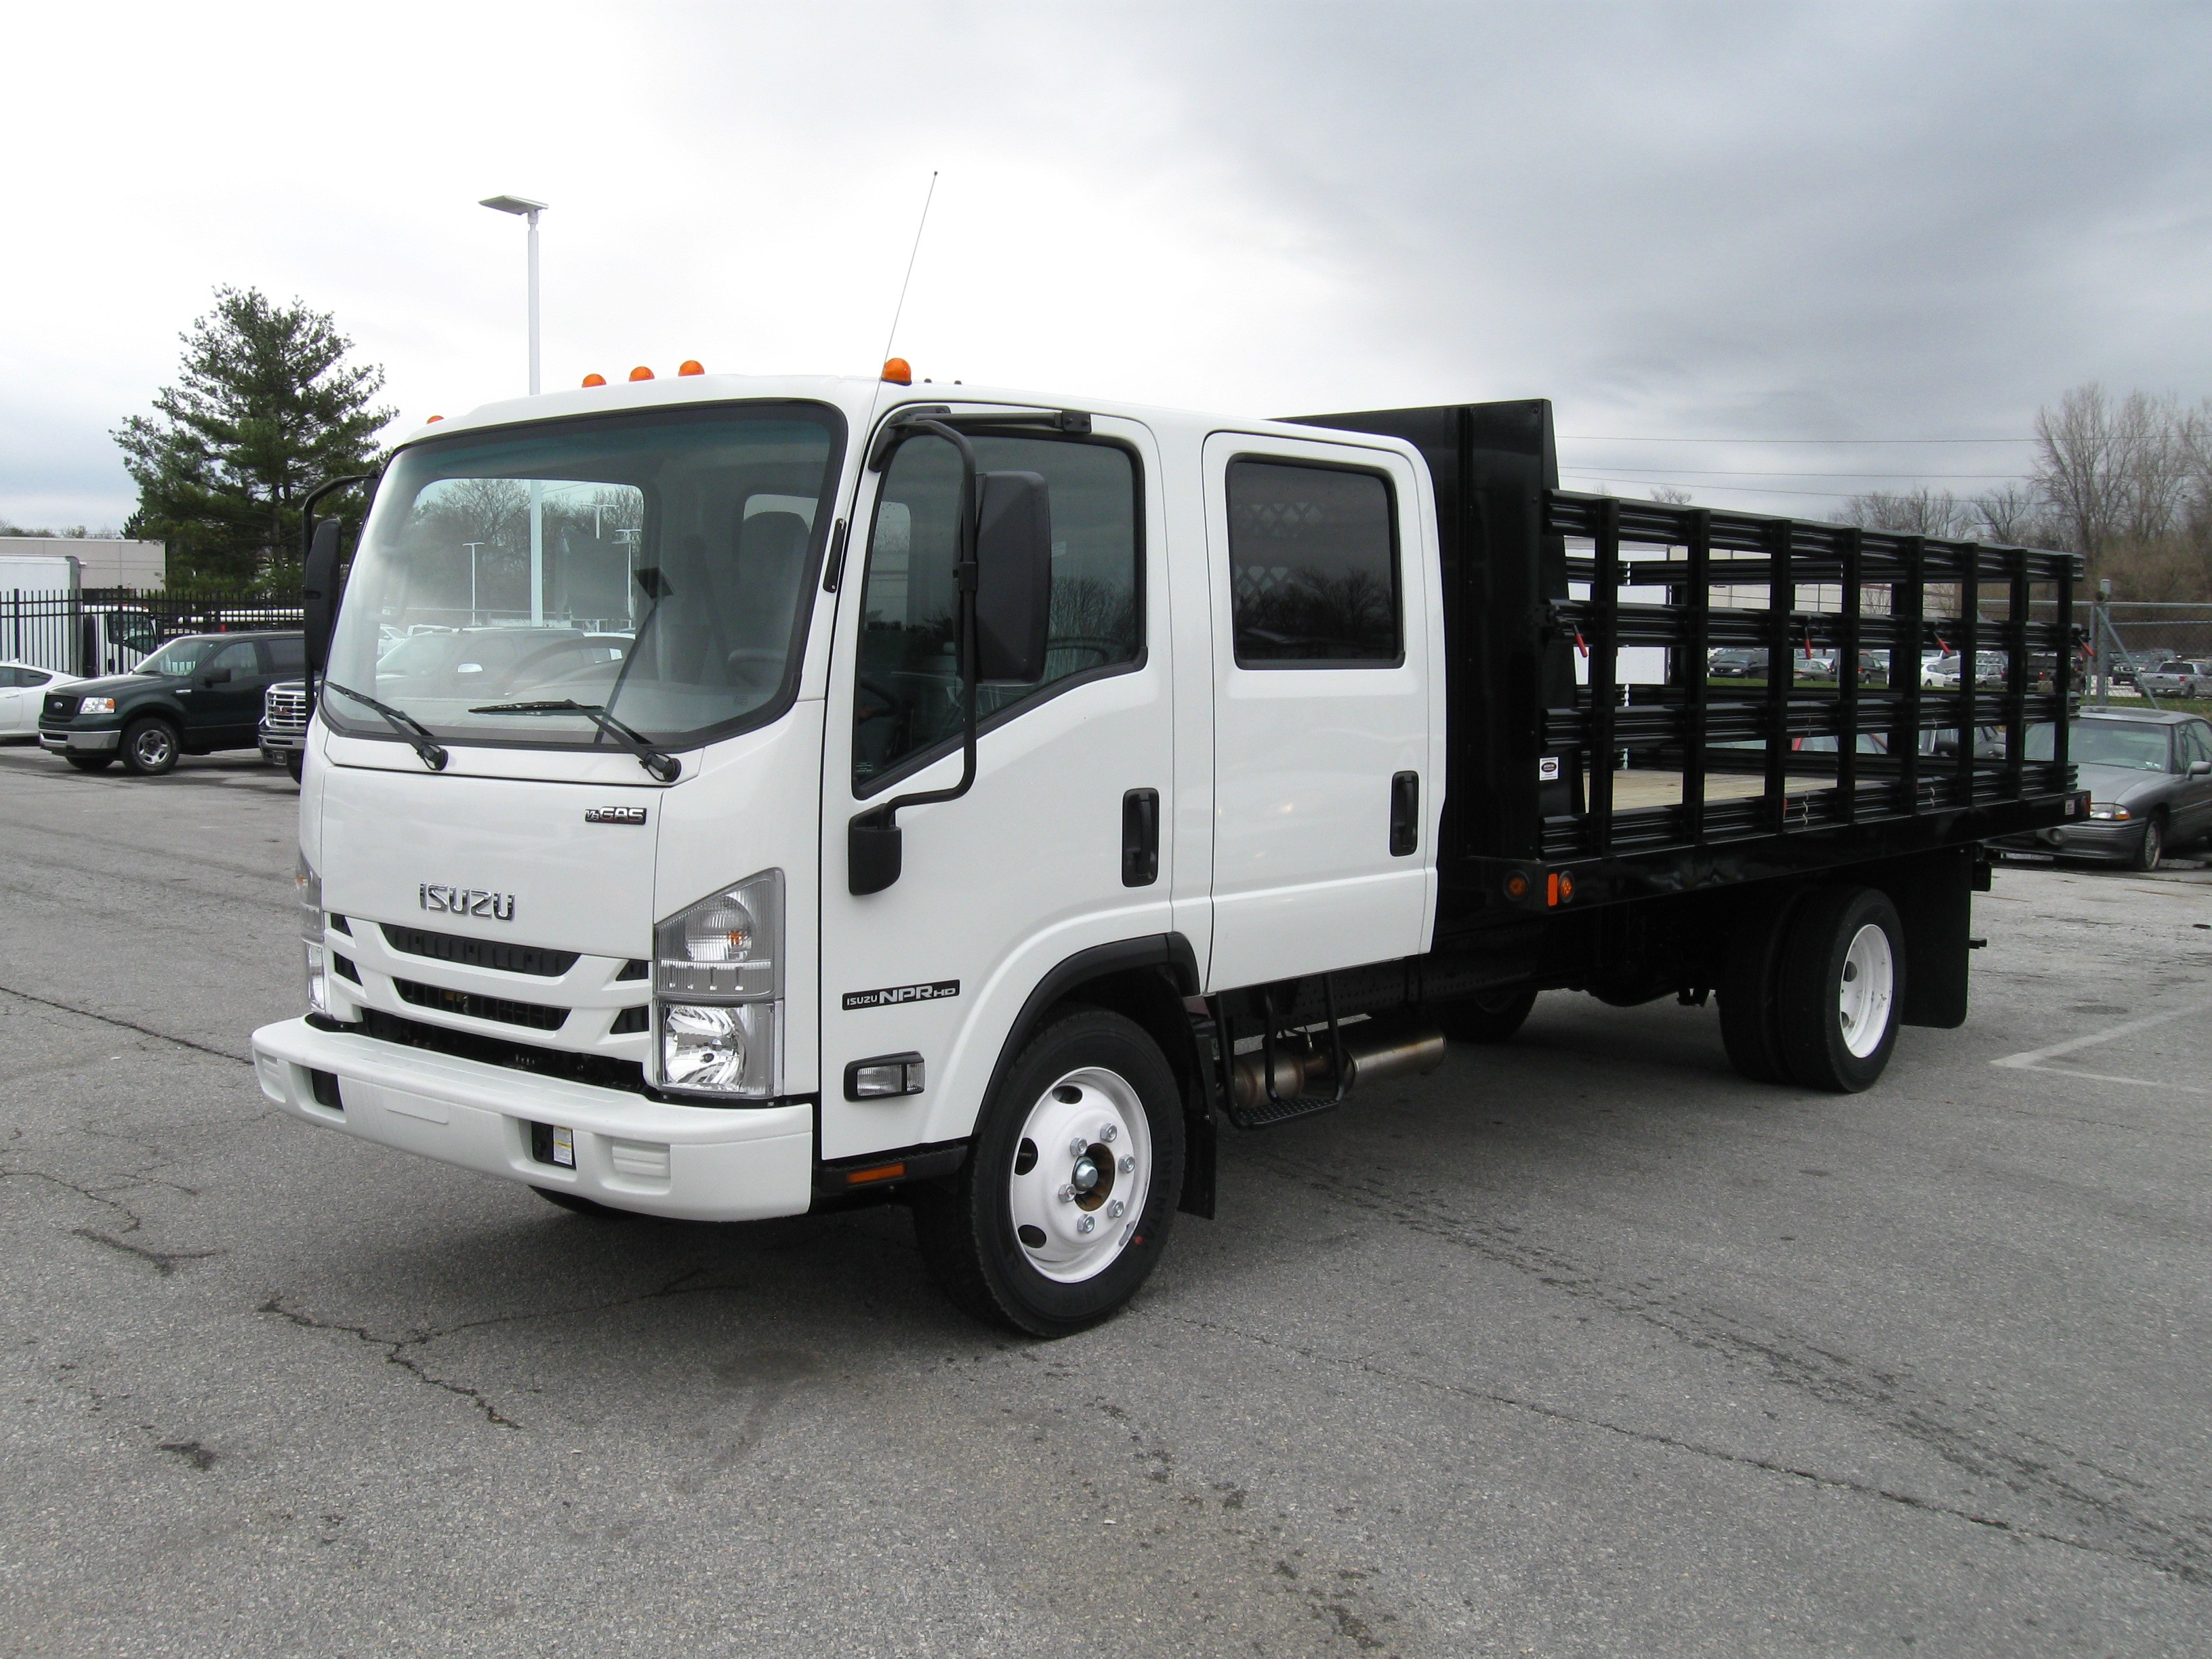 Cabover Trucks For Sale >> Used Inventory Cab Chassis Cabover Truck Sales In Pa